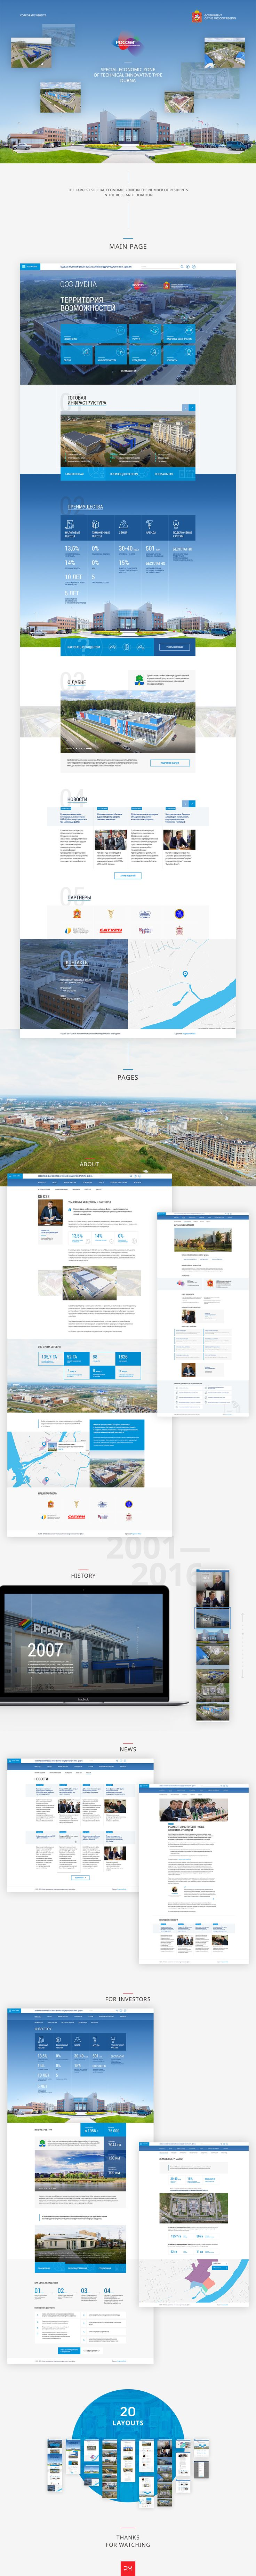 SPECIAL ECONOMIC ZONE OF TECHNICAL INNOVATIVE TYPE DUBNA — THE LARGEST SPECIAL ECONOMIC ZONE IN THE NUMBER OF RESIDENTS IN THE RUSSIAN FEDERATION